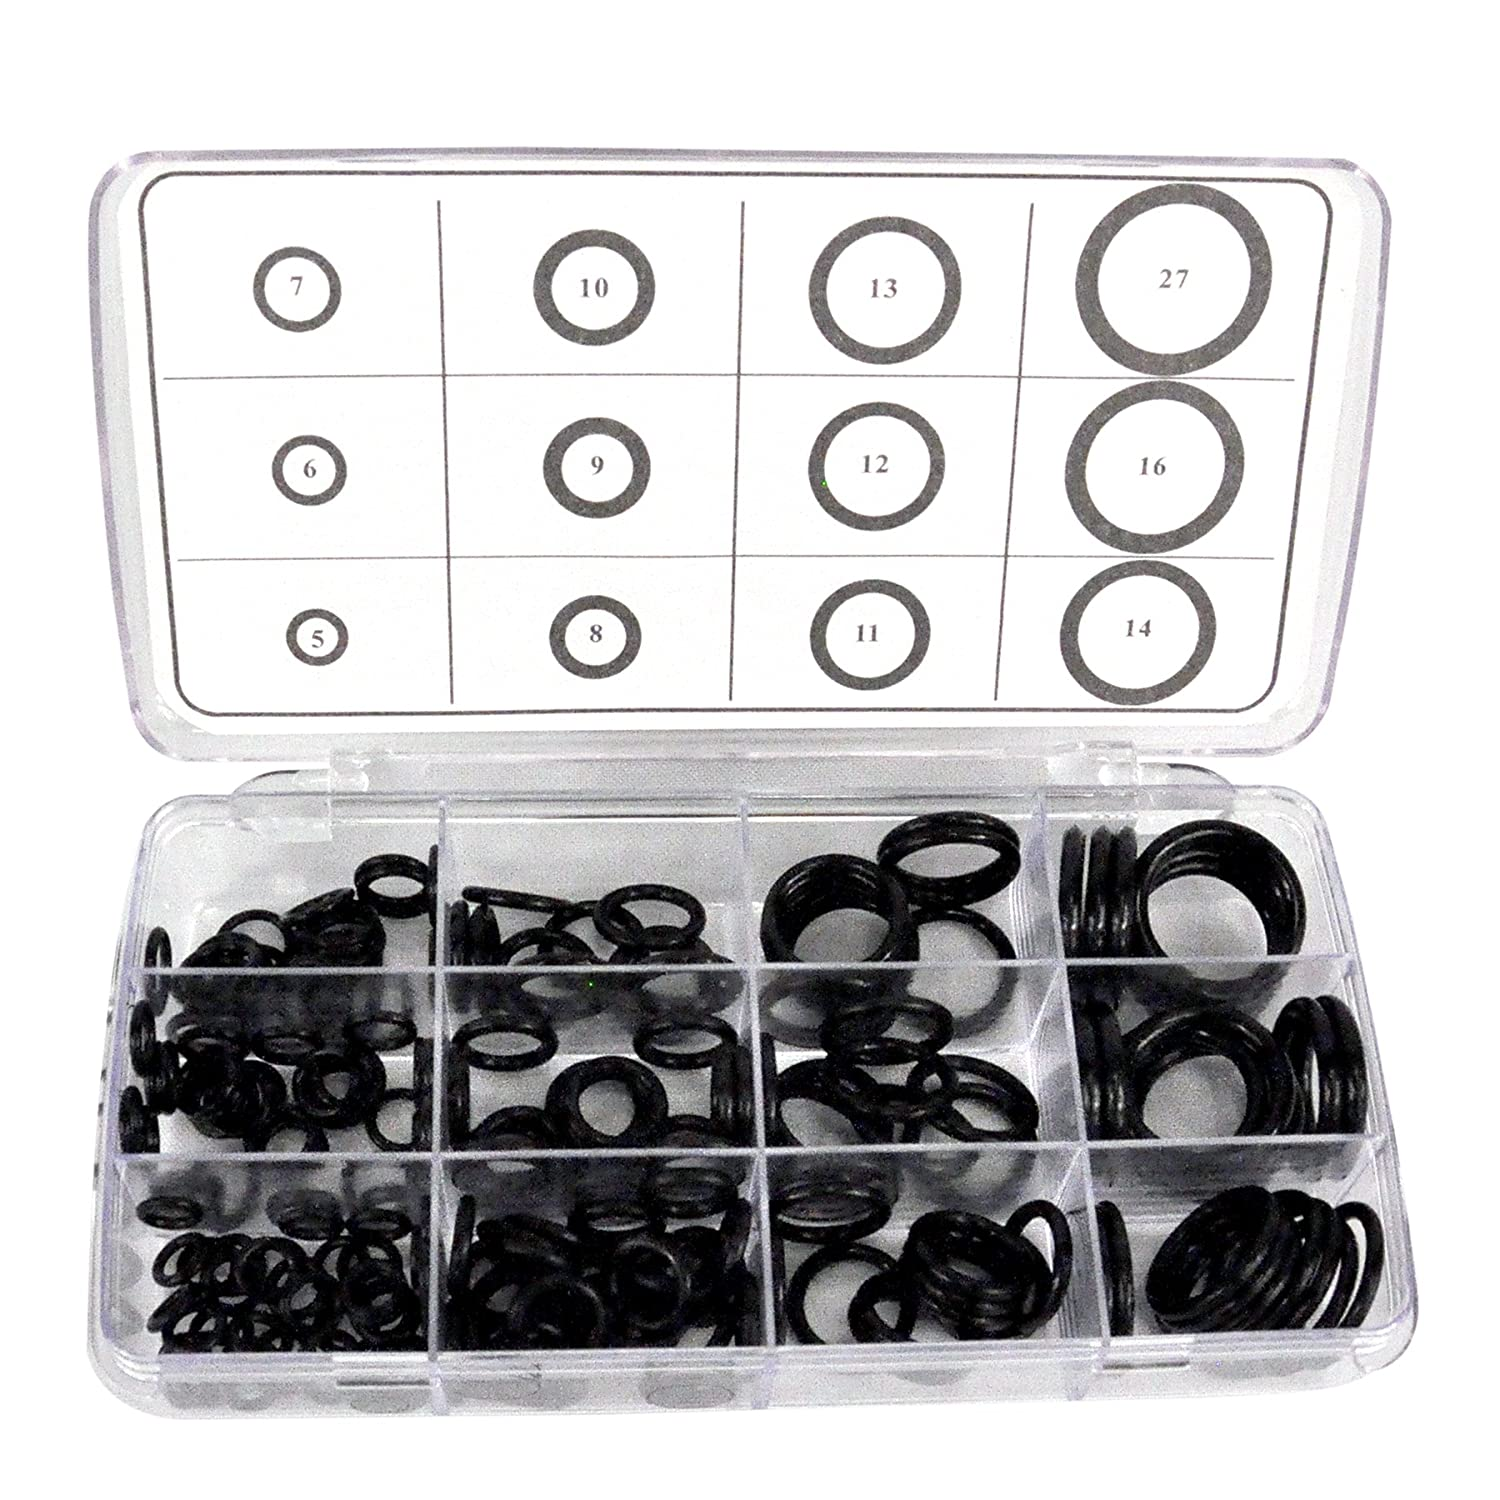 Danco 34443 200 piece rubber faucet o ring kit faucet o rings danco 34443 200 piece rubber faucet o ring kit faucet o rings amazon geenschuldenfo Choice Image